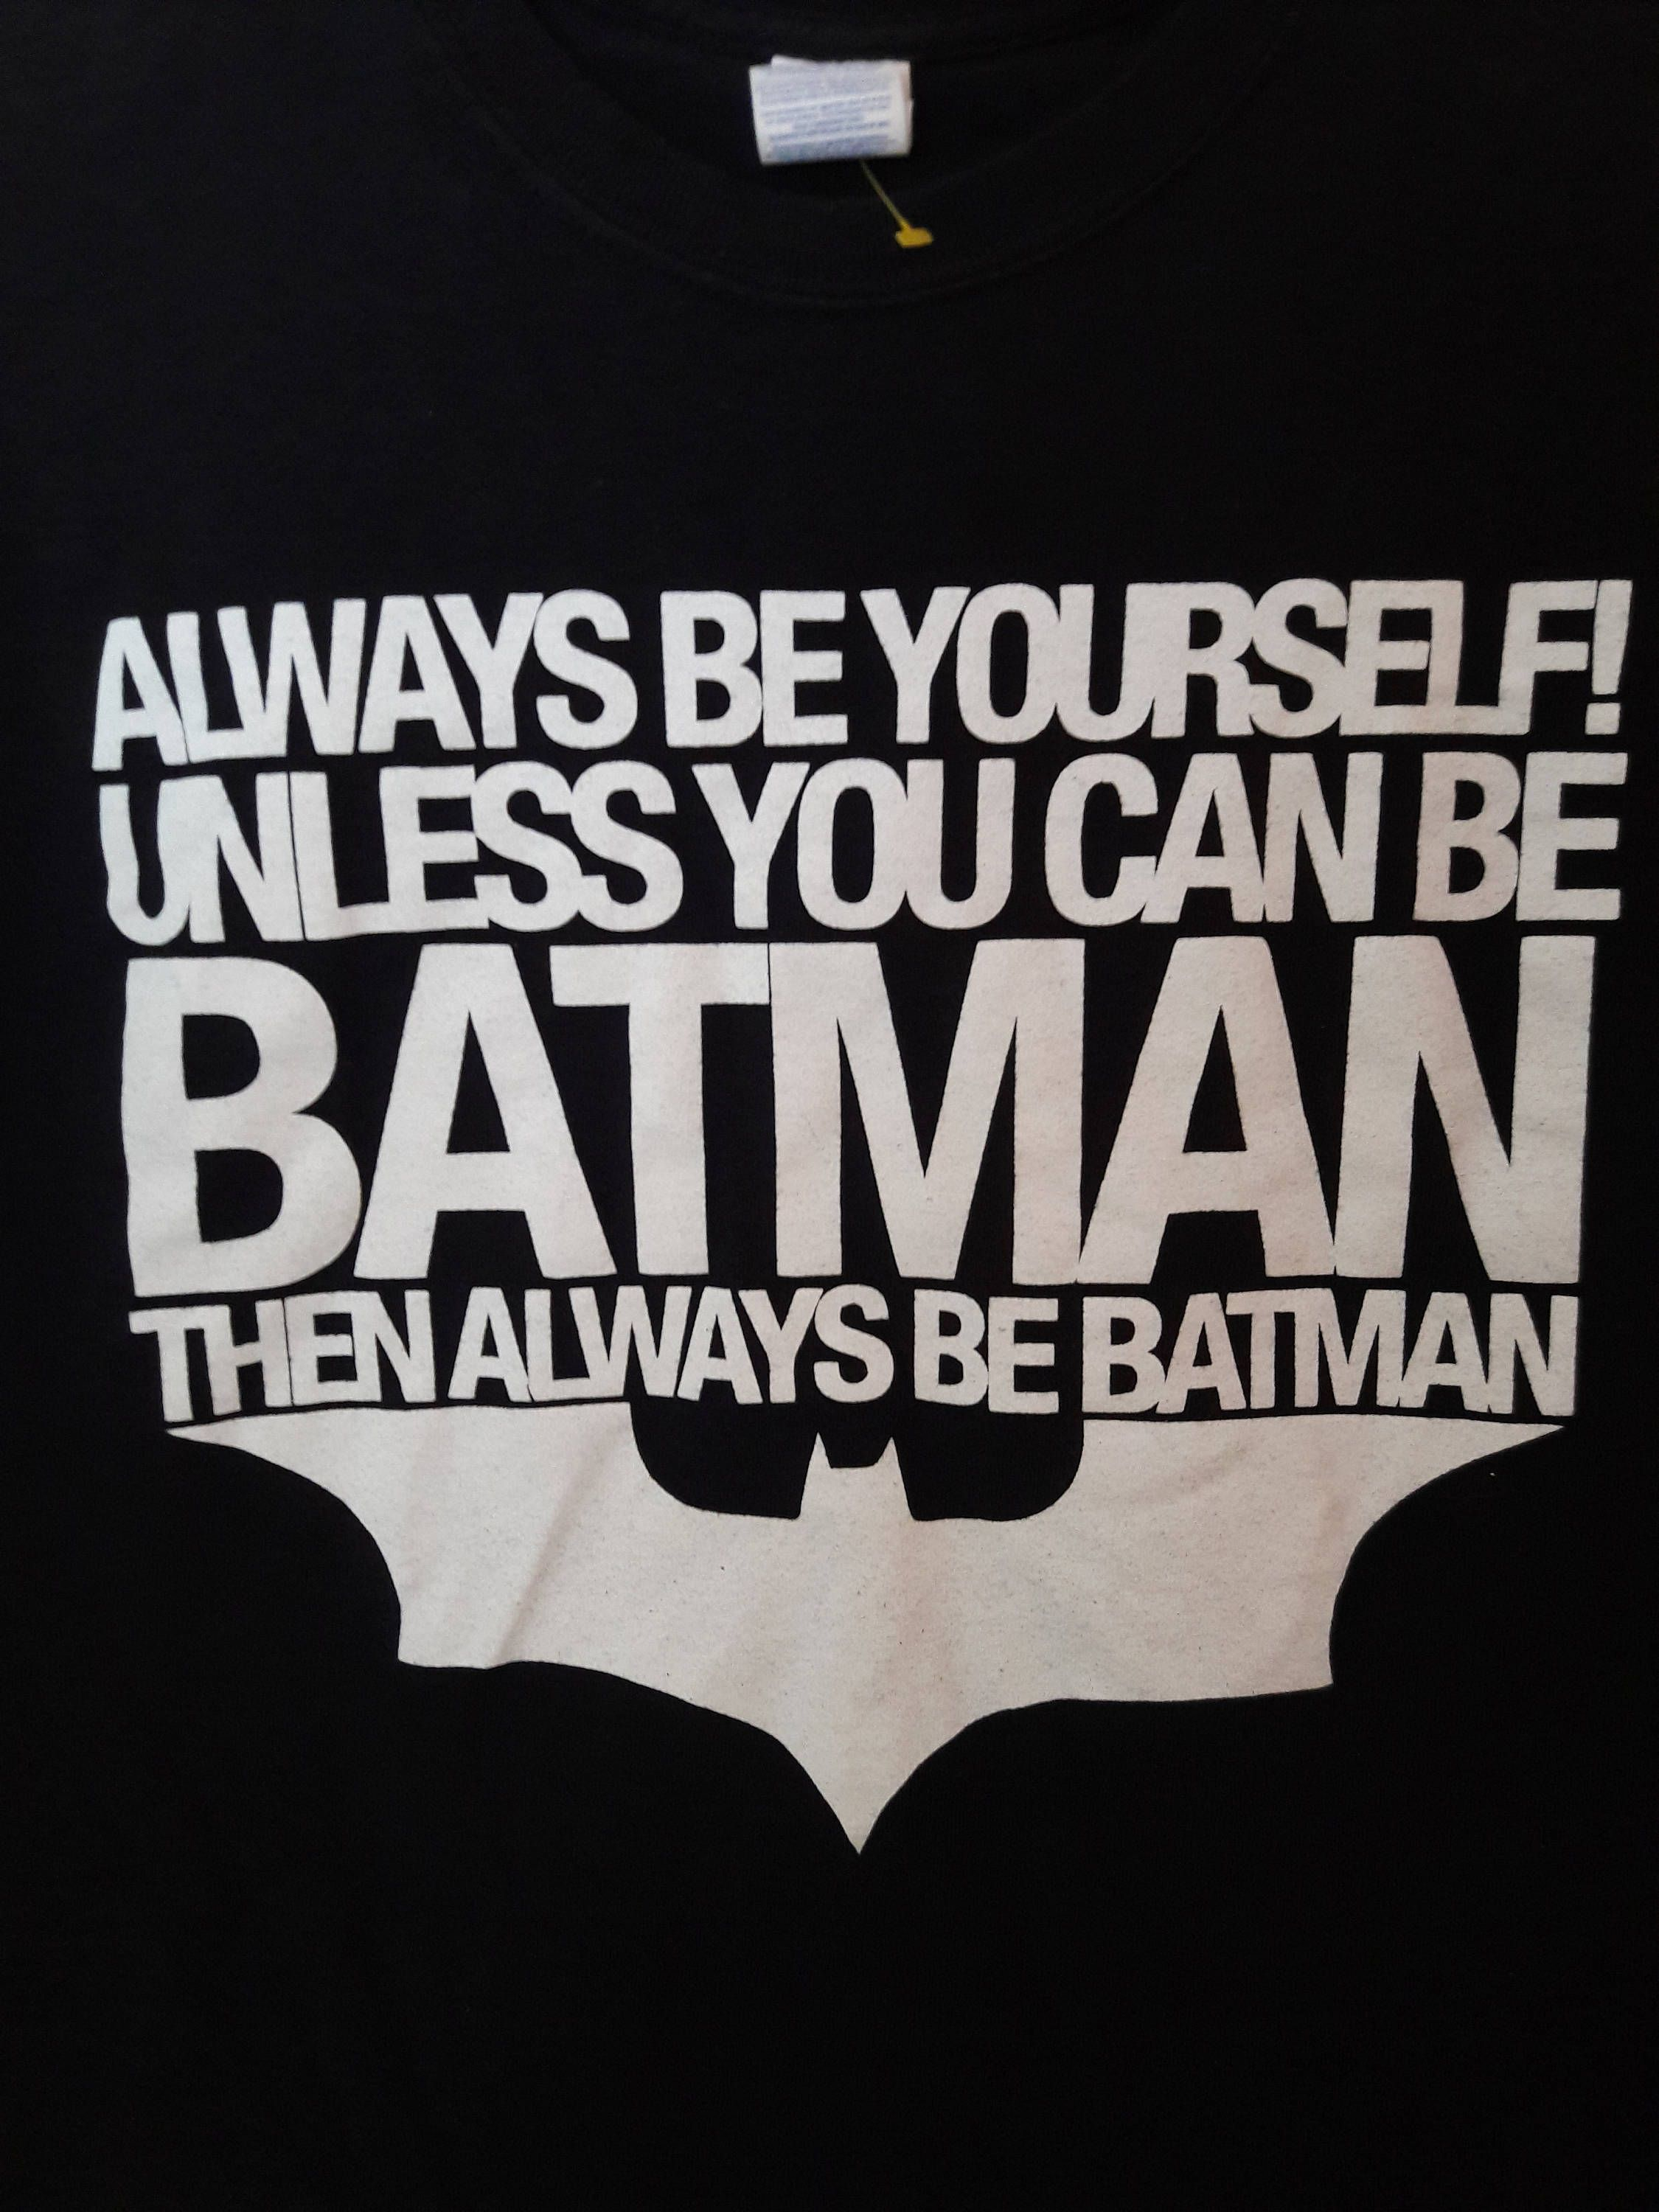 c212e260f Funny Clothes, Funny Outfits, Batman Shirt, Superman Wonder Woman, Batman  Family,